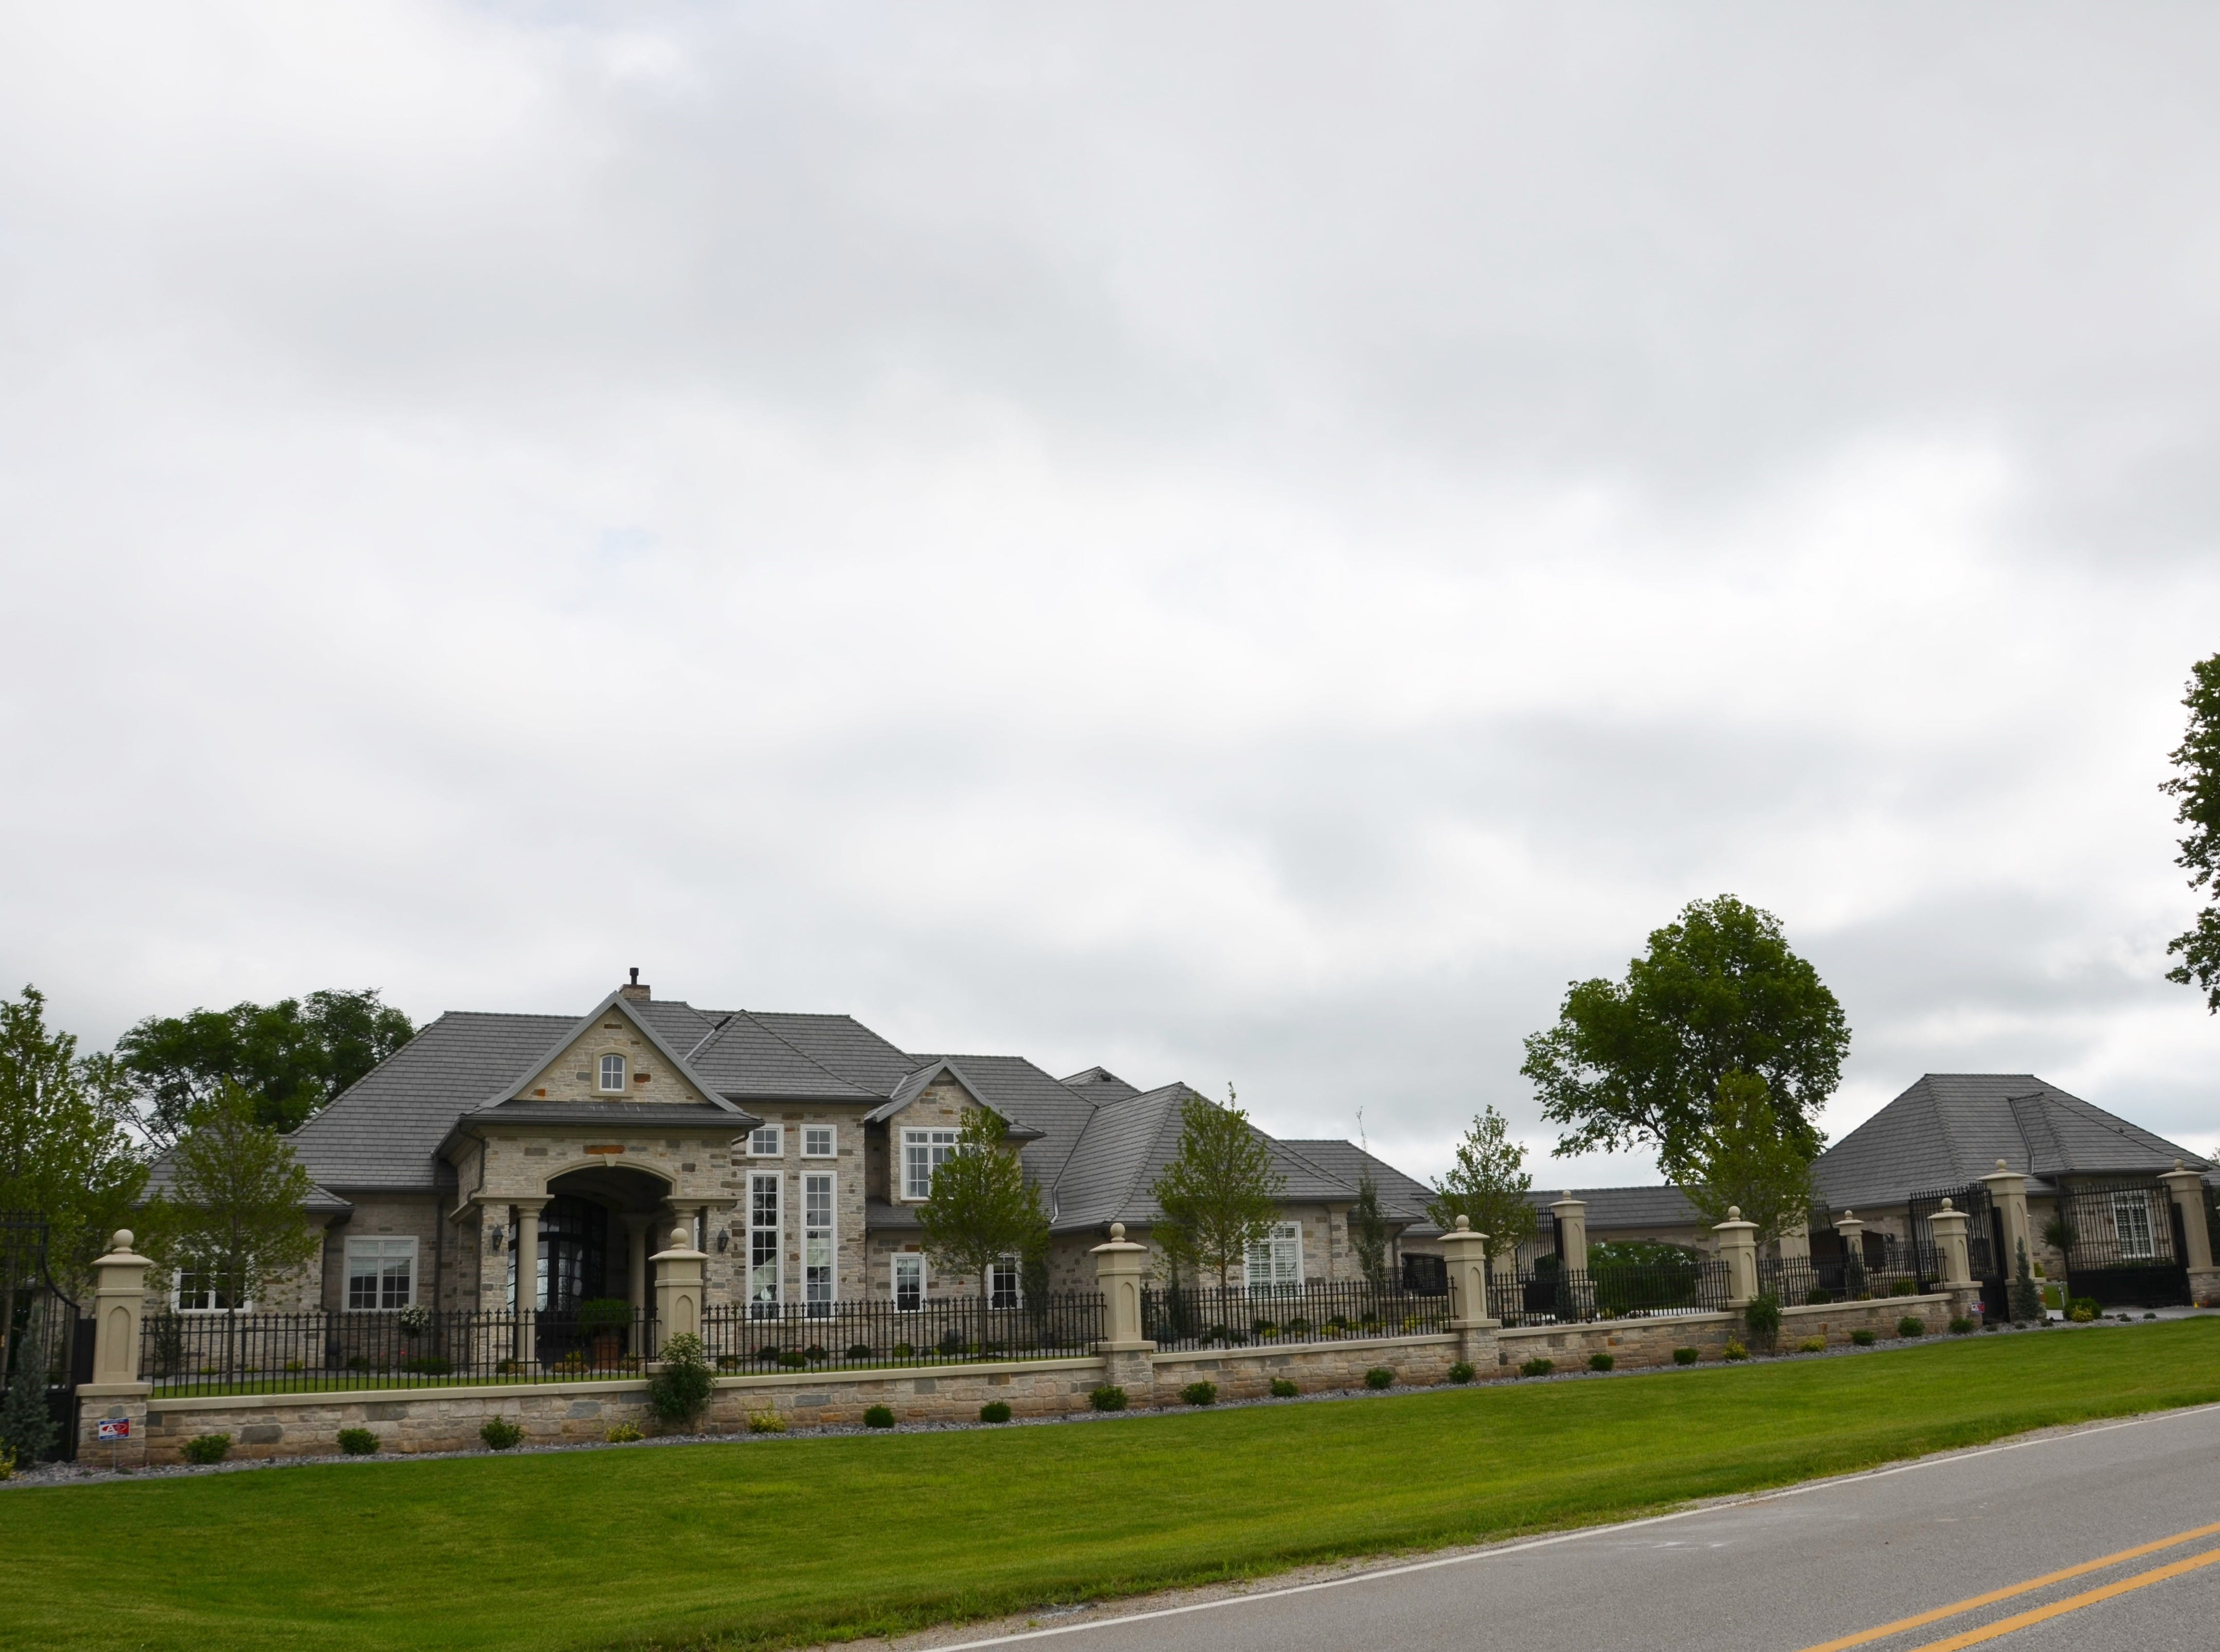 Dennis and Susan have built a new home in Ankeny that sits on the Talons of Tuscany private golf course.